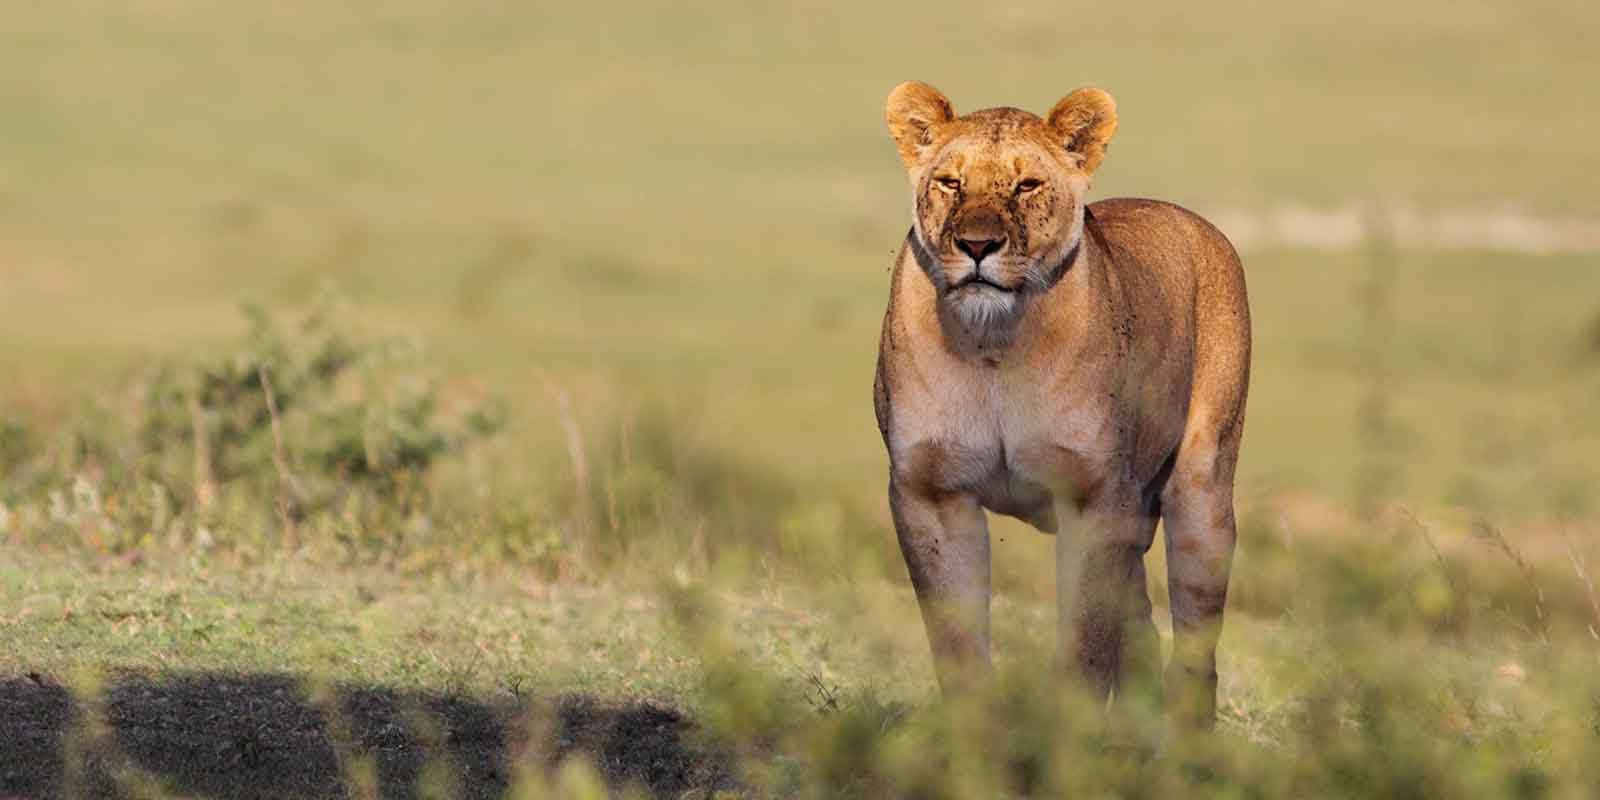 Lioness standing in grass